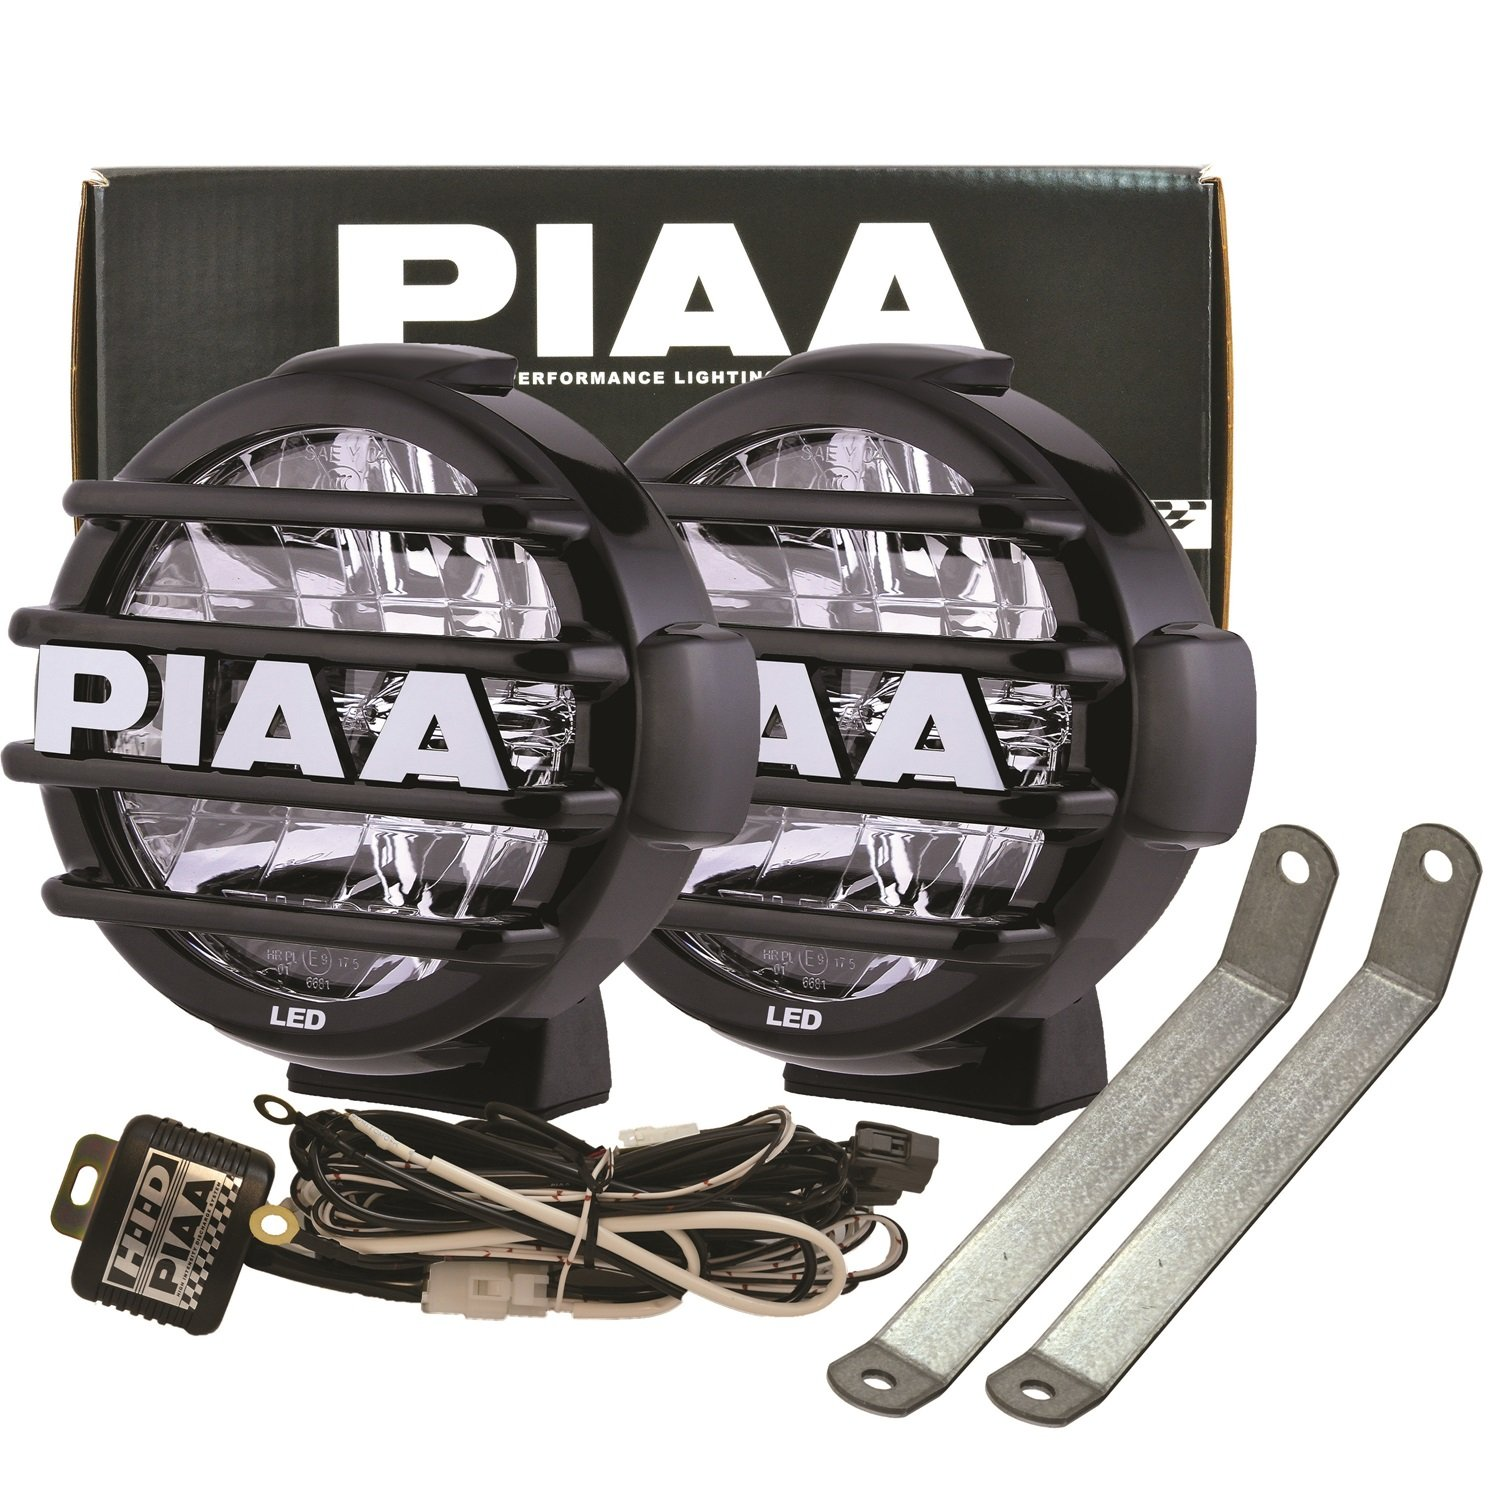 81KPMygDFTL._SL1500_ amazon com piaa (5798) lp570 led driving light kit with brackets High Intensity LED Driving Lights at edmiracle.co